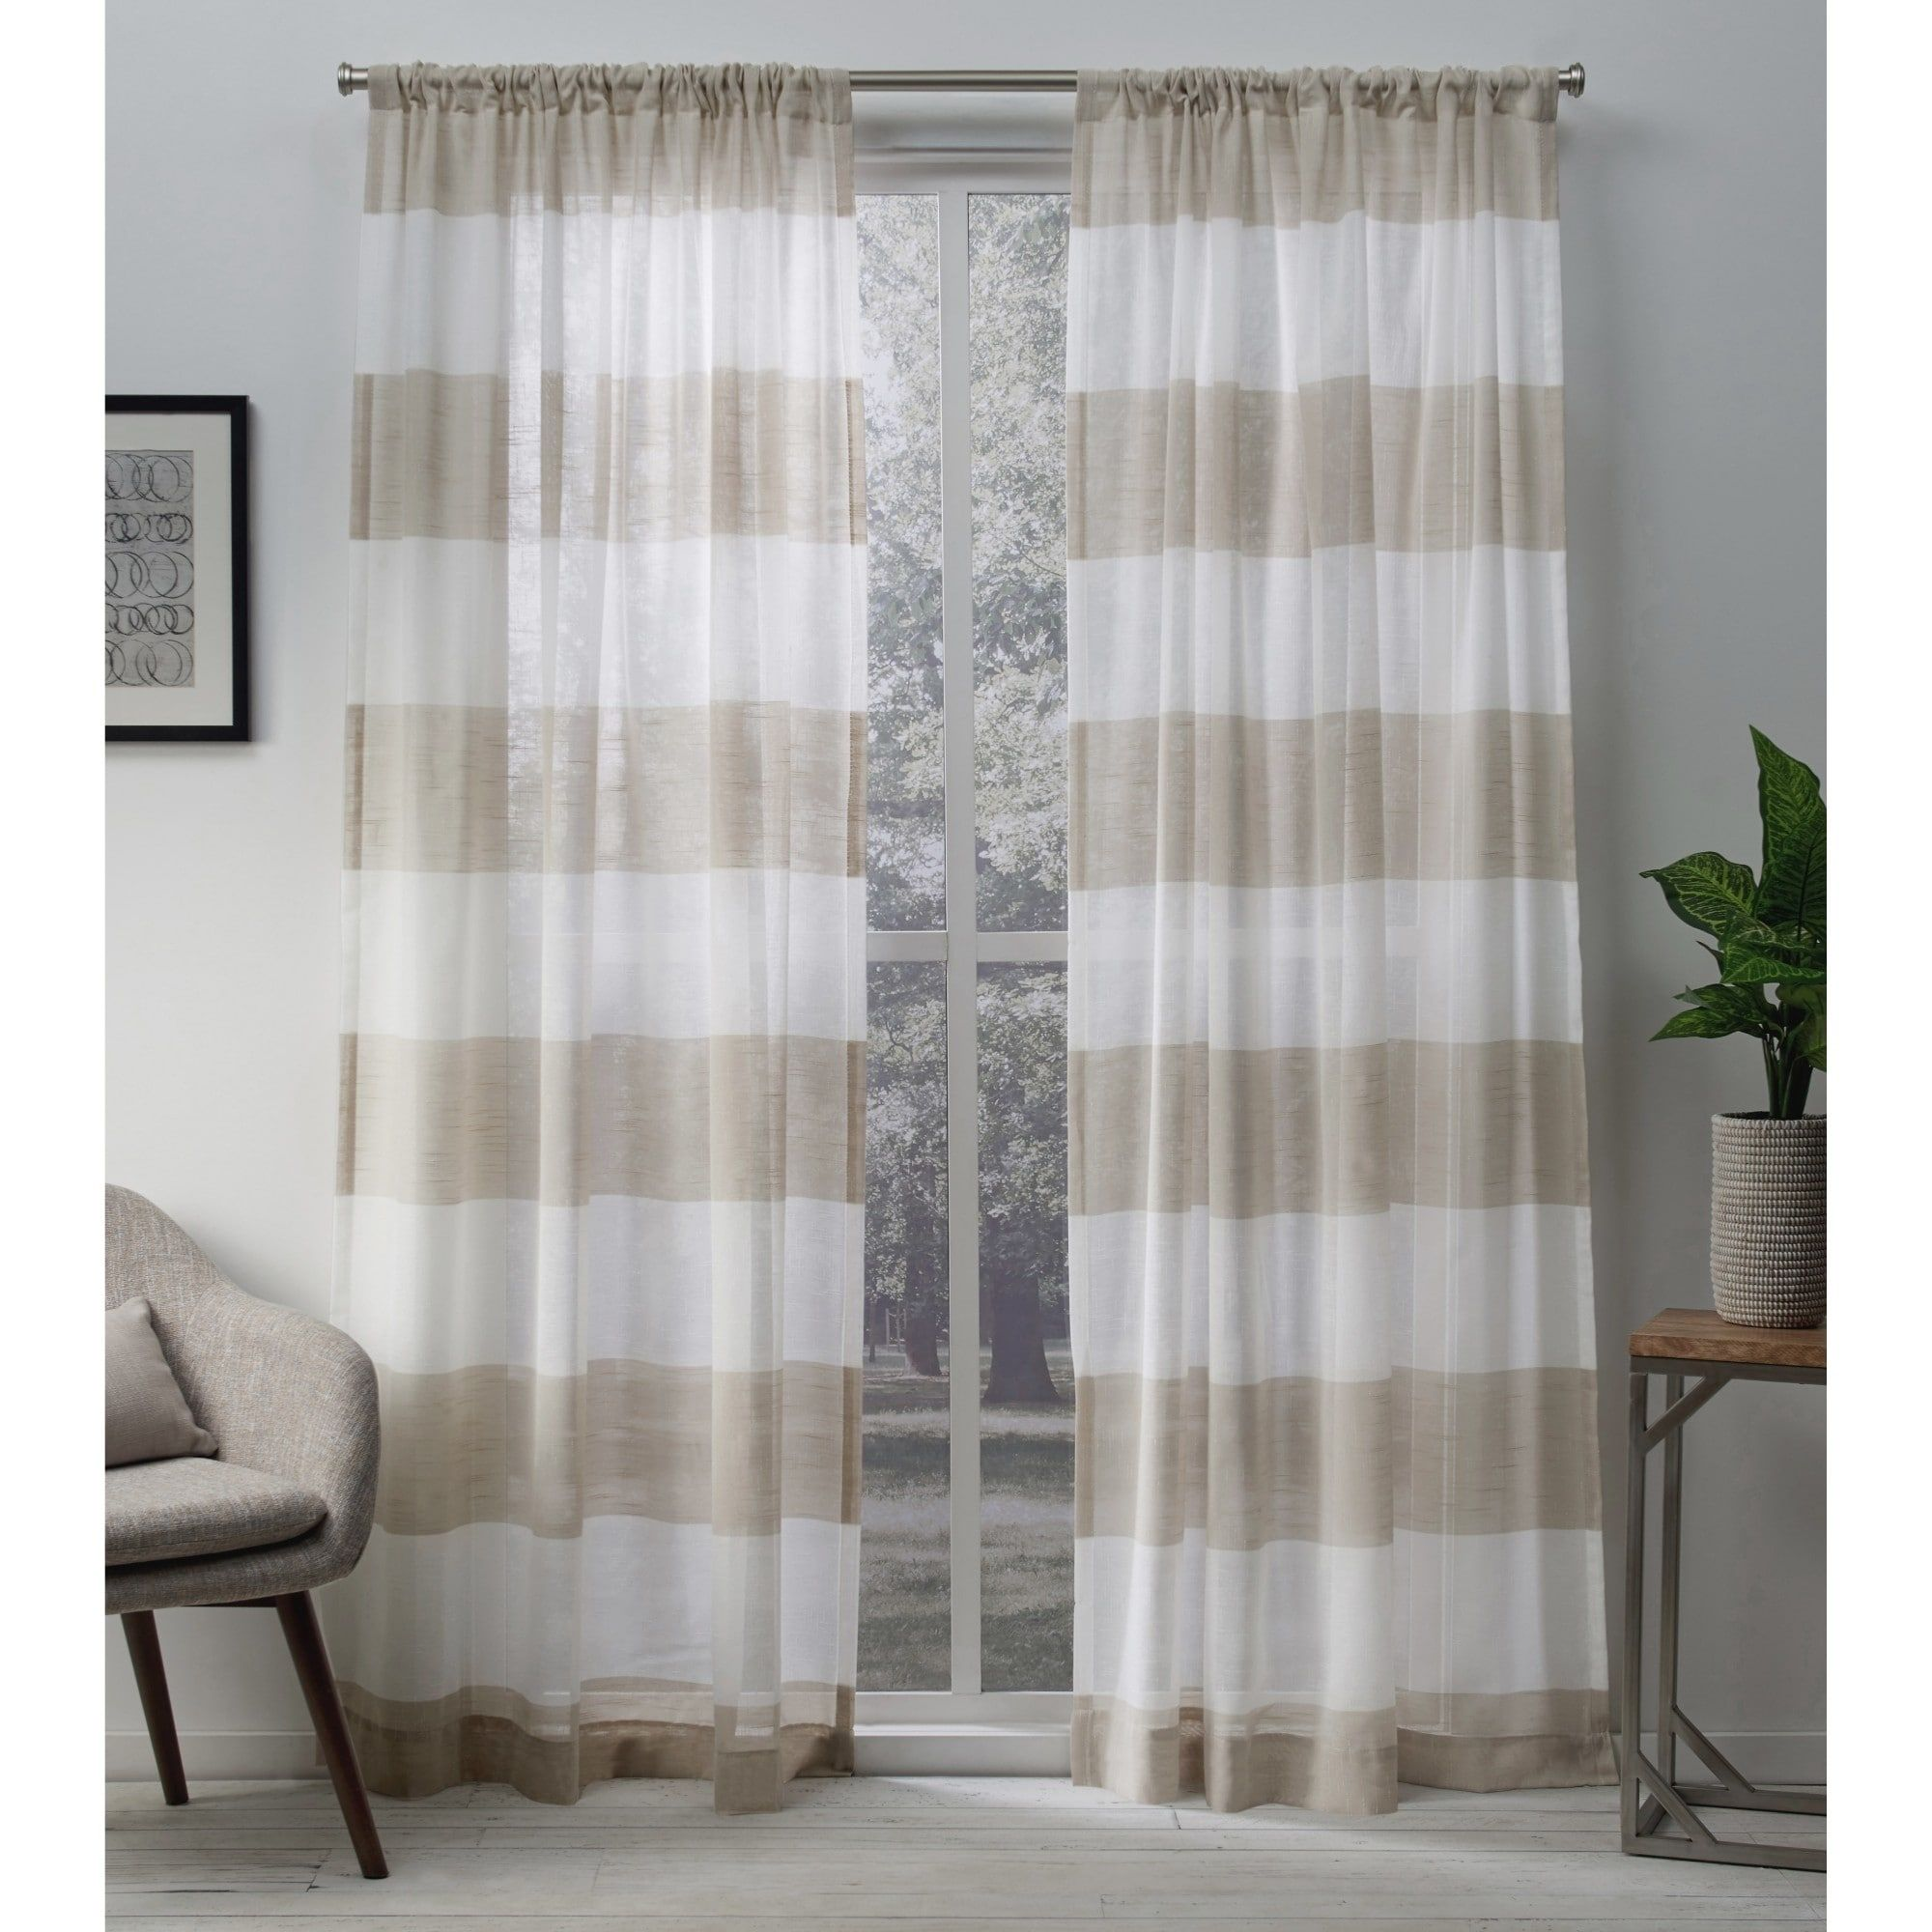 Ati Home Darma Sheer Linen Curtain Panel Pair With Rod